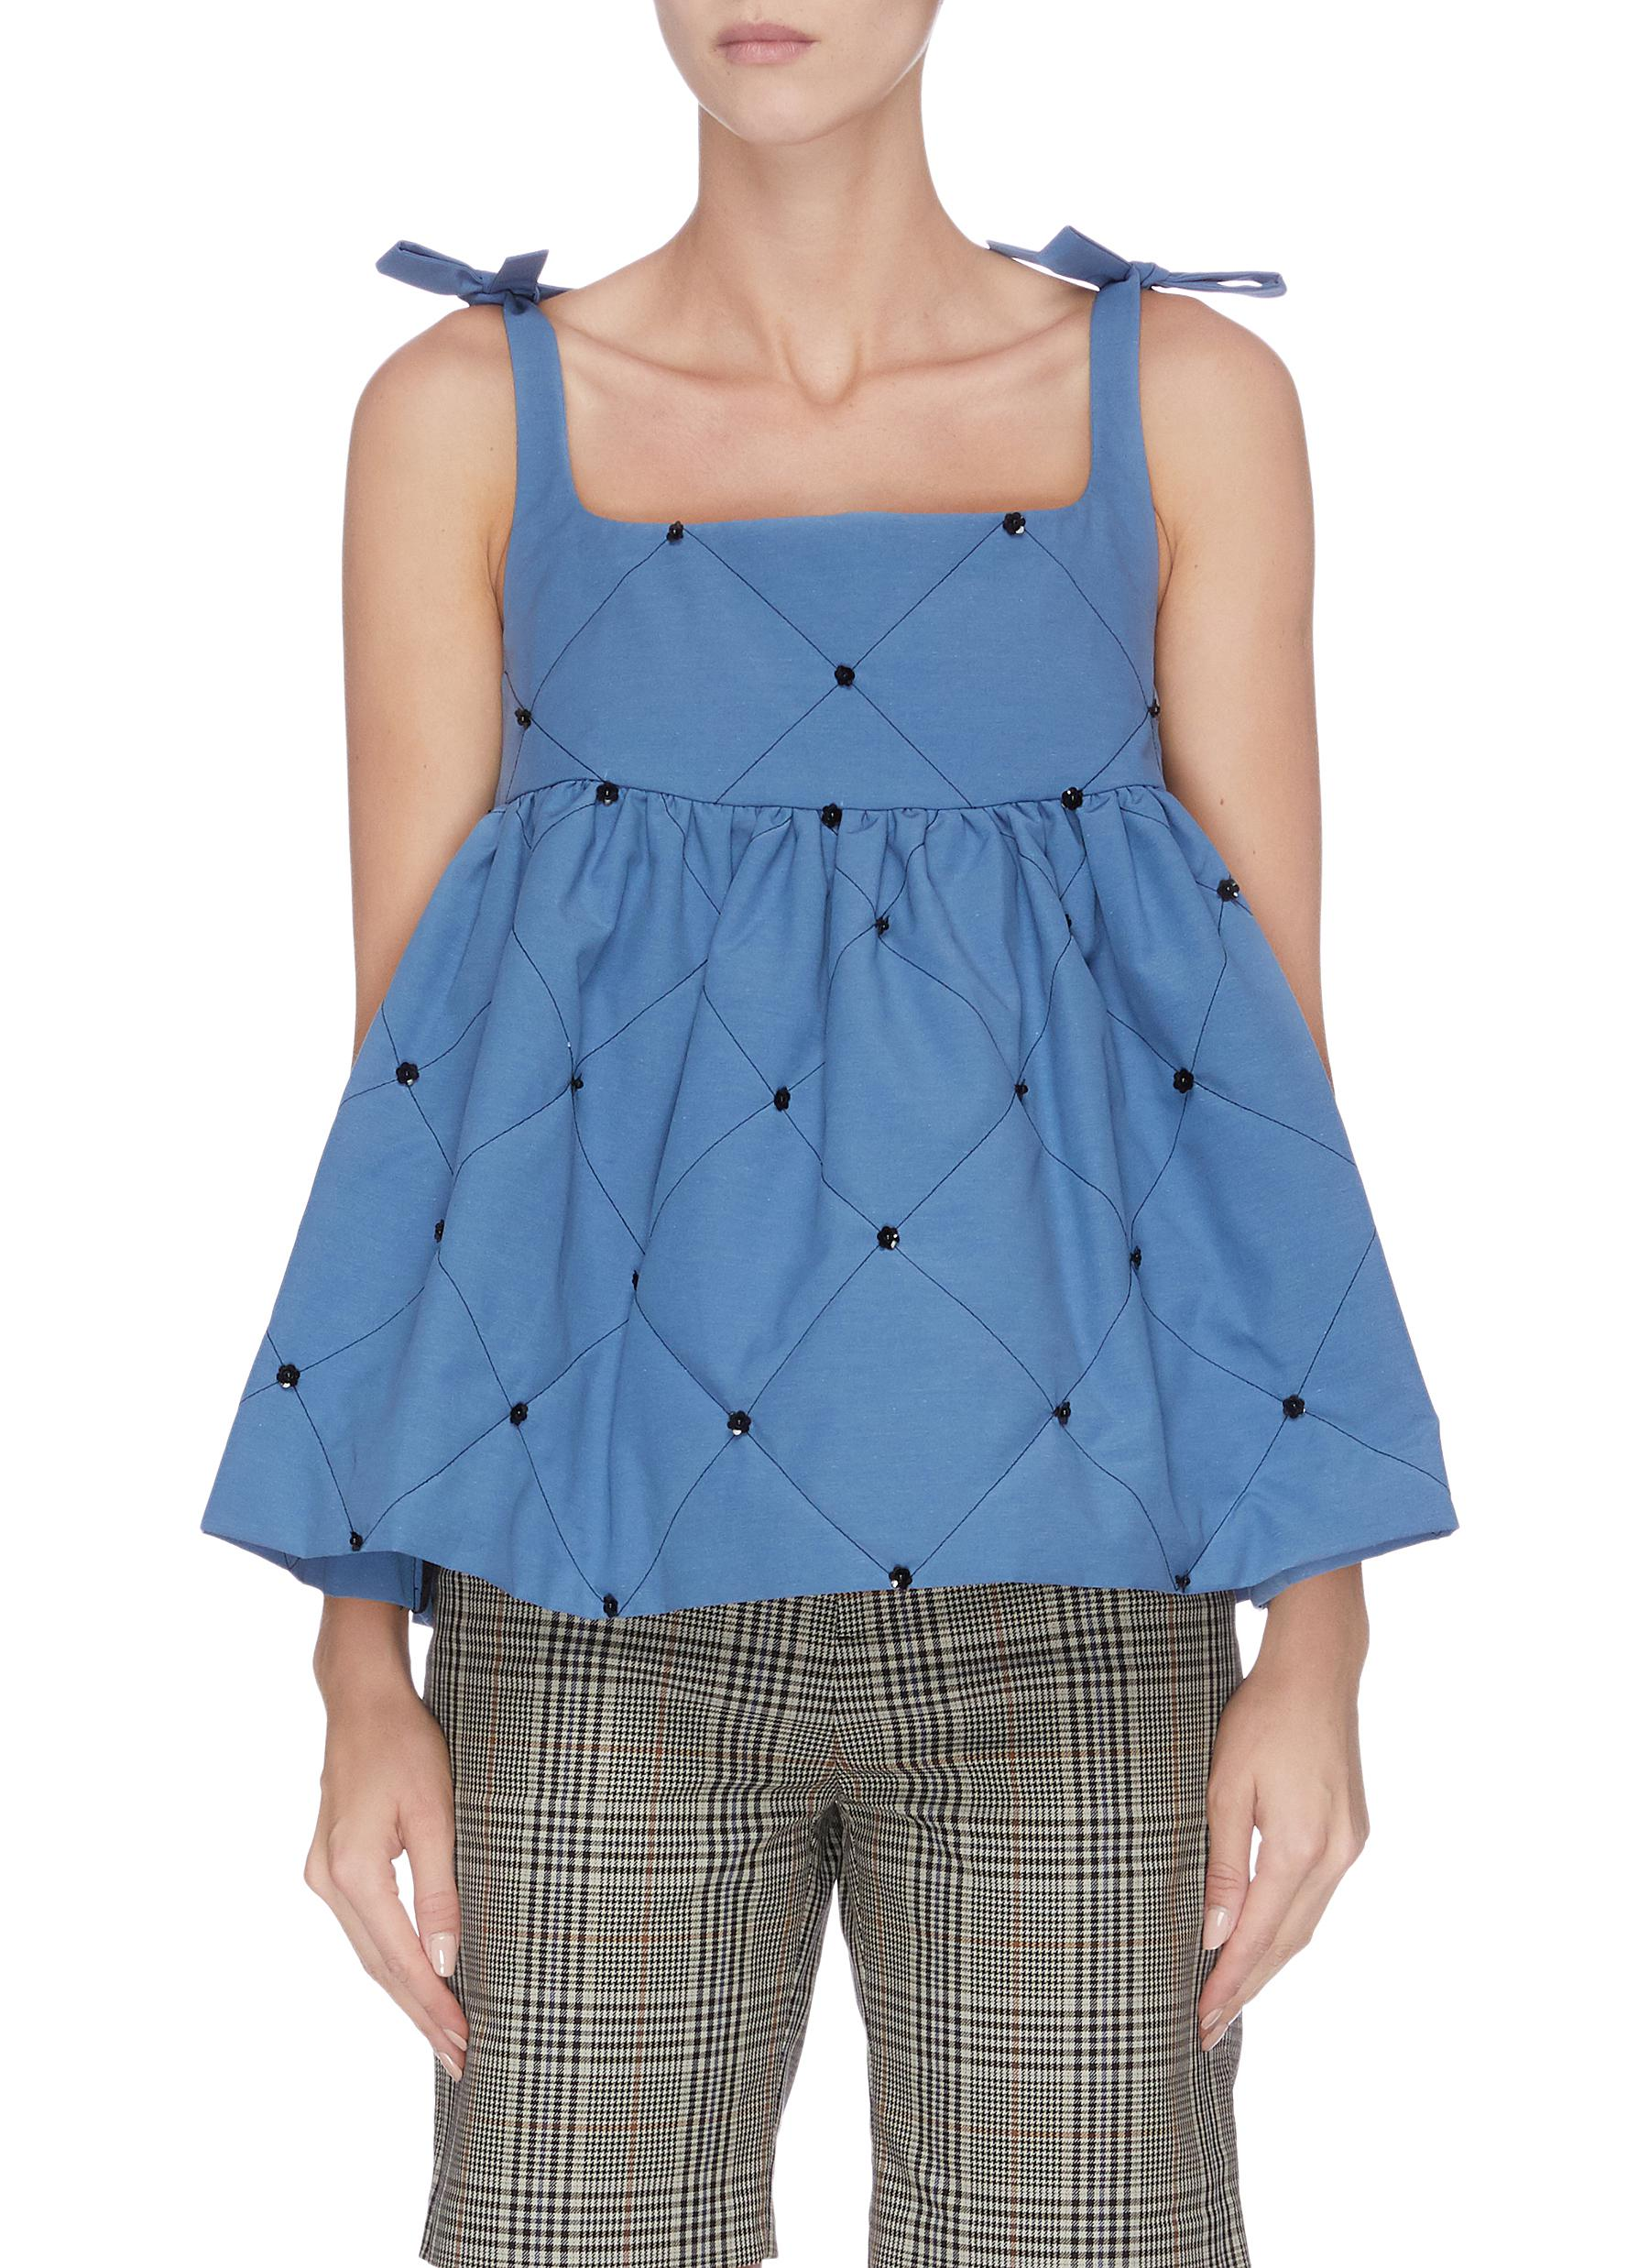 Diamond pattern sleeveless embellished top by Märchen